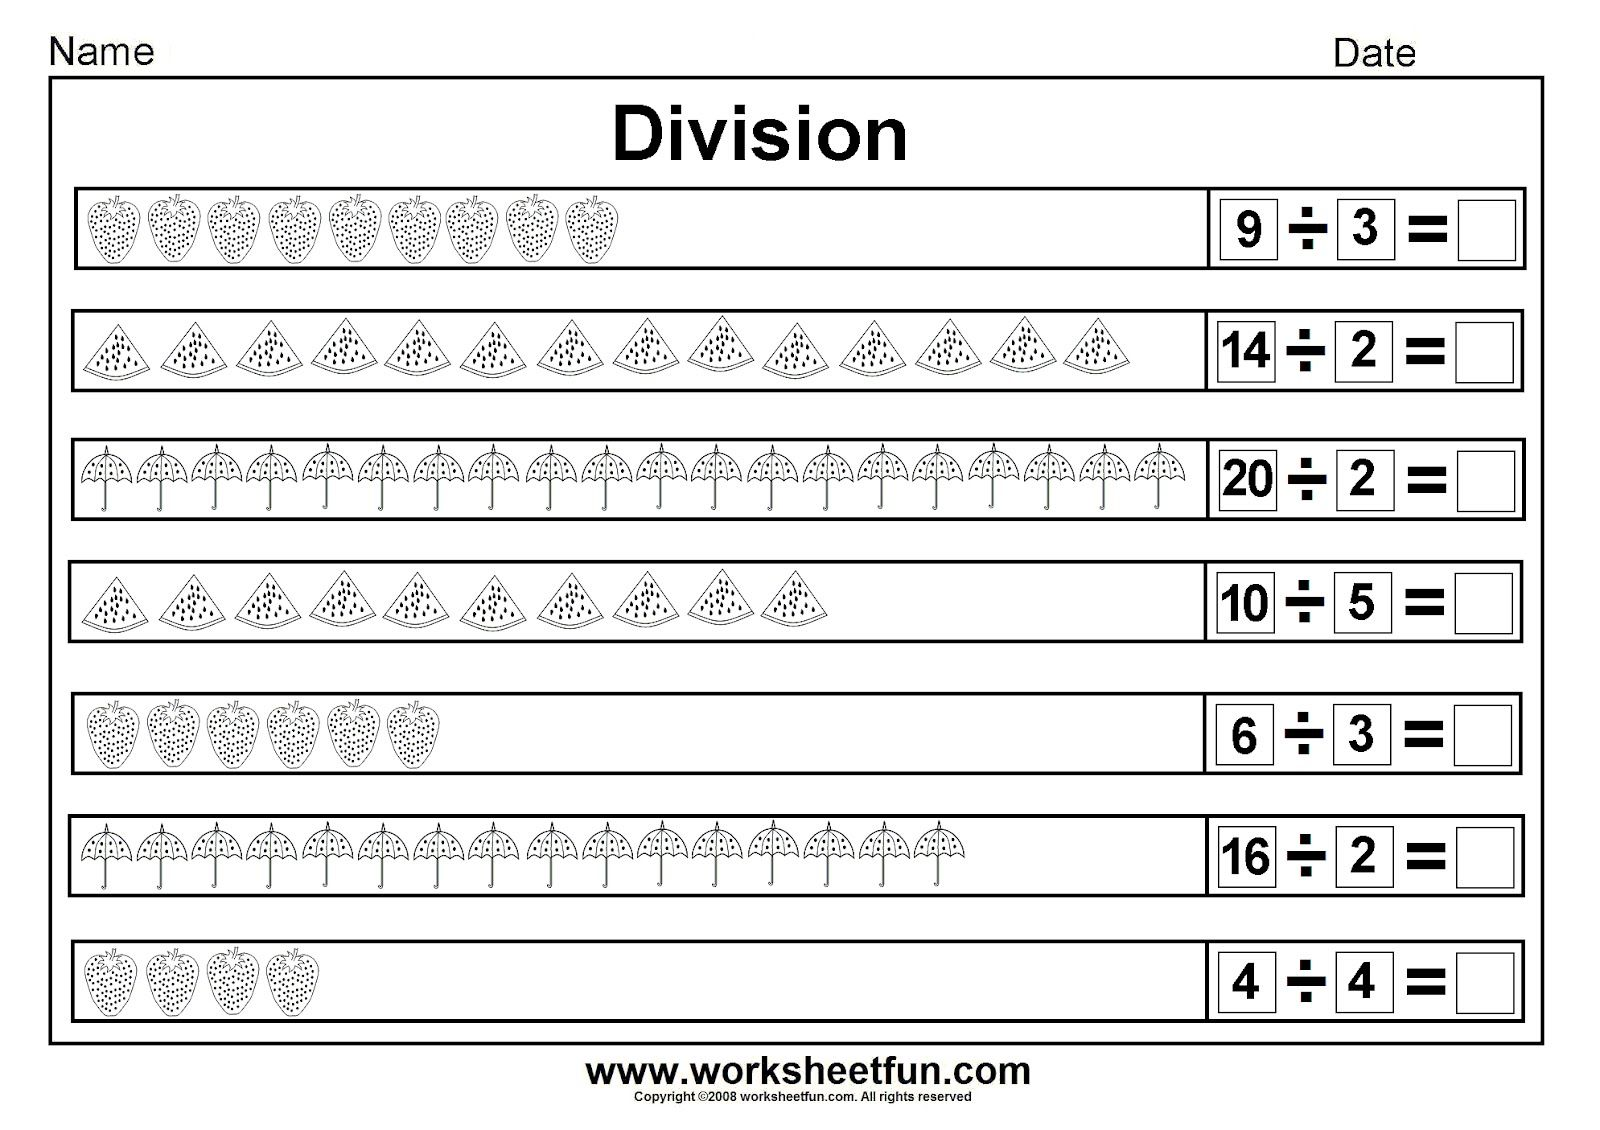 Divide 3 Worksheet